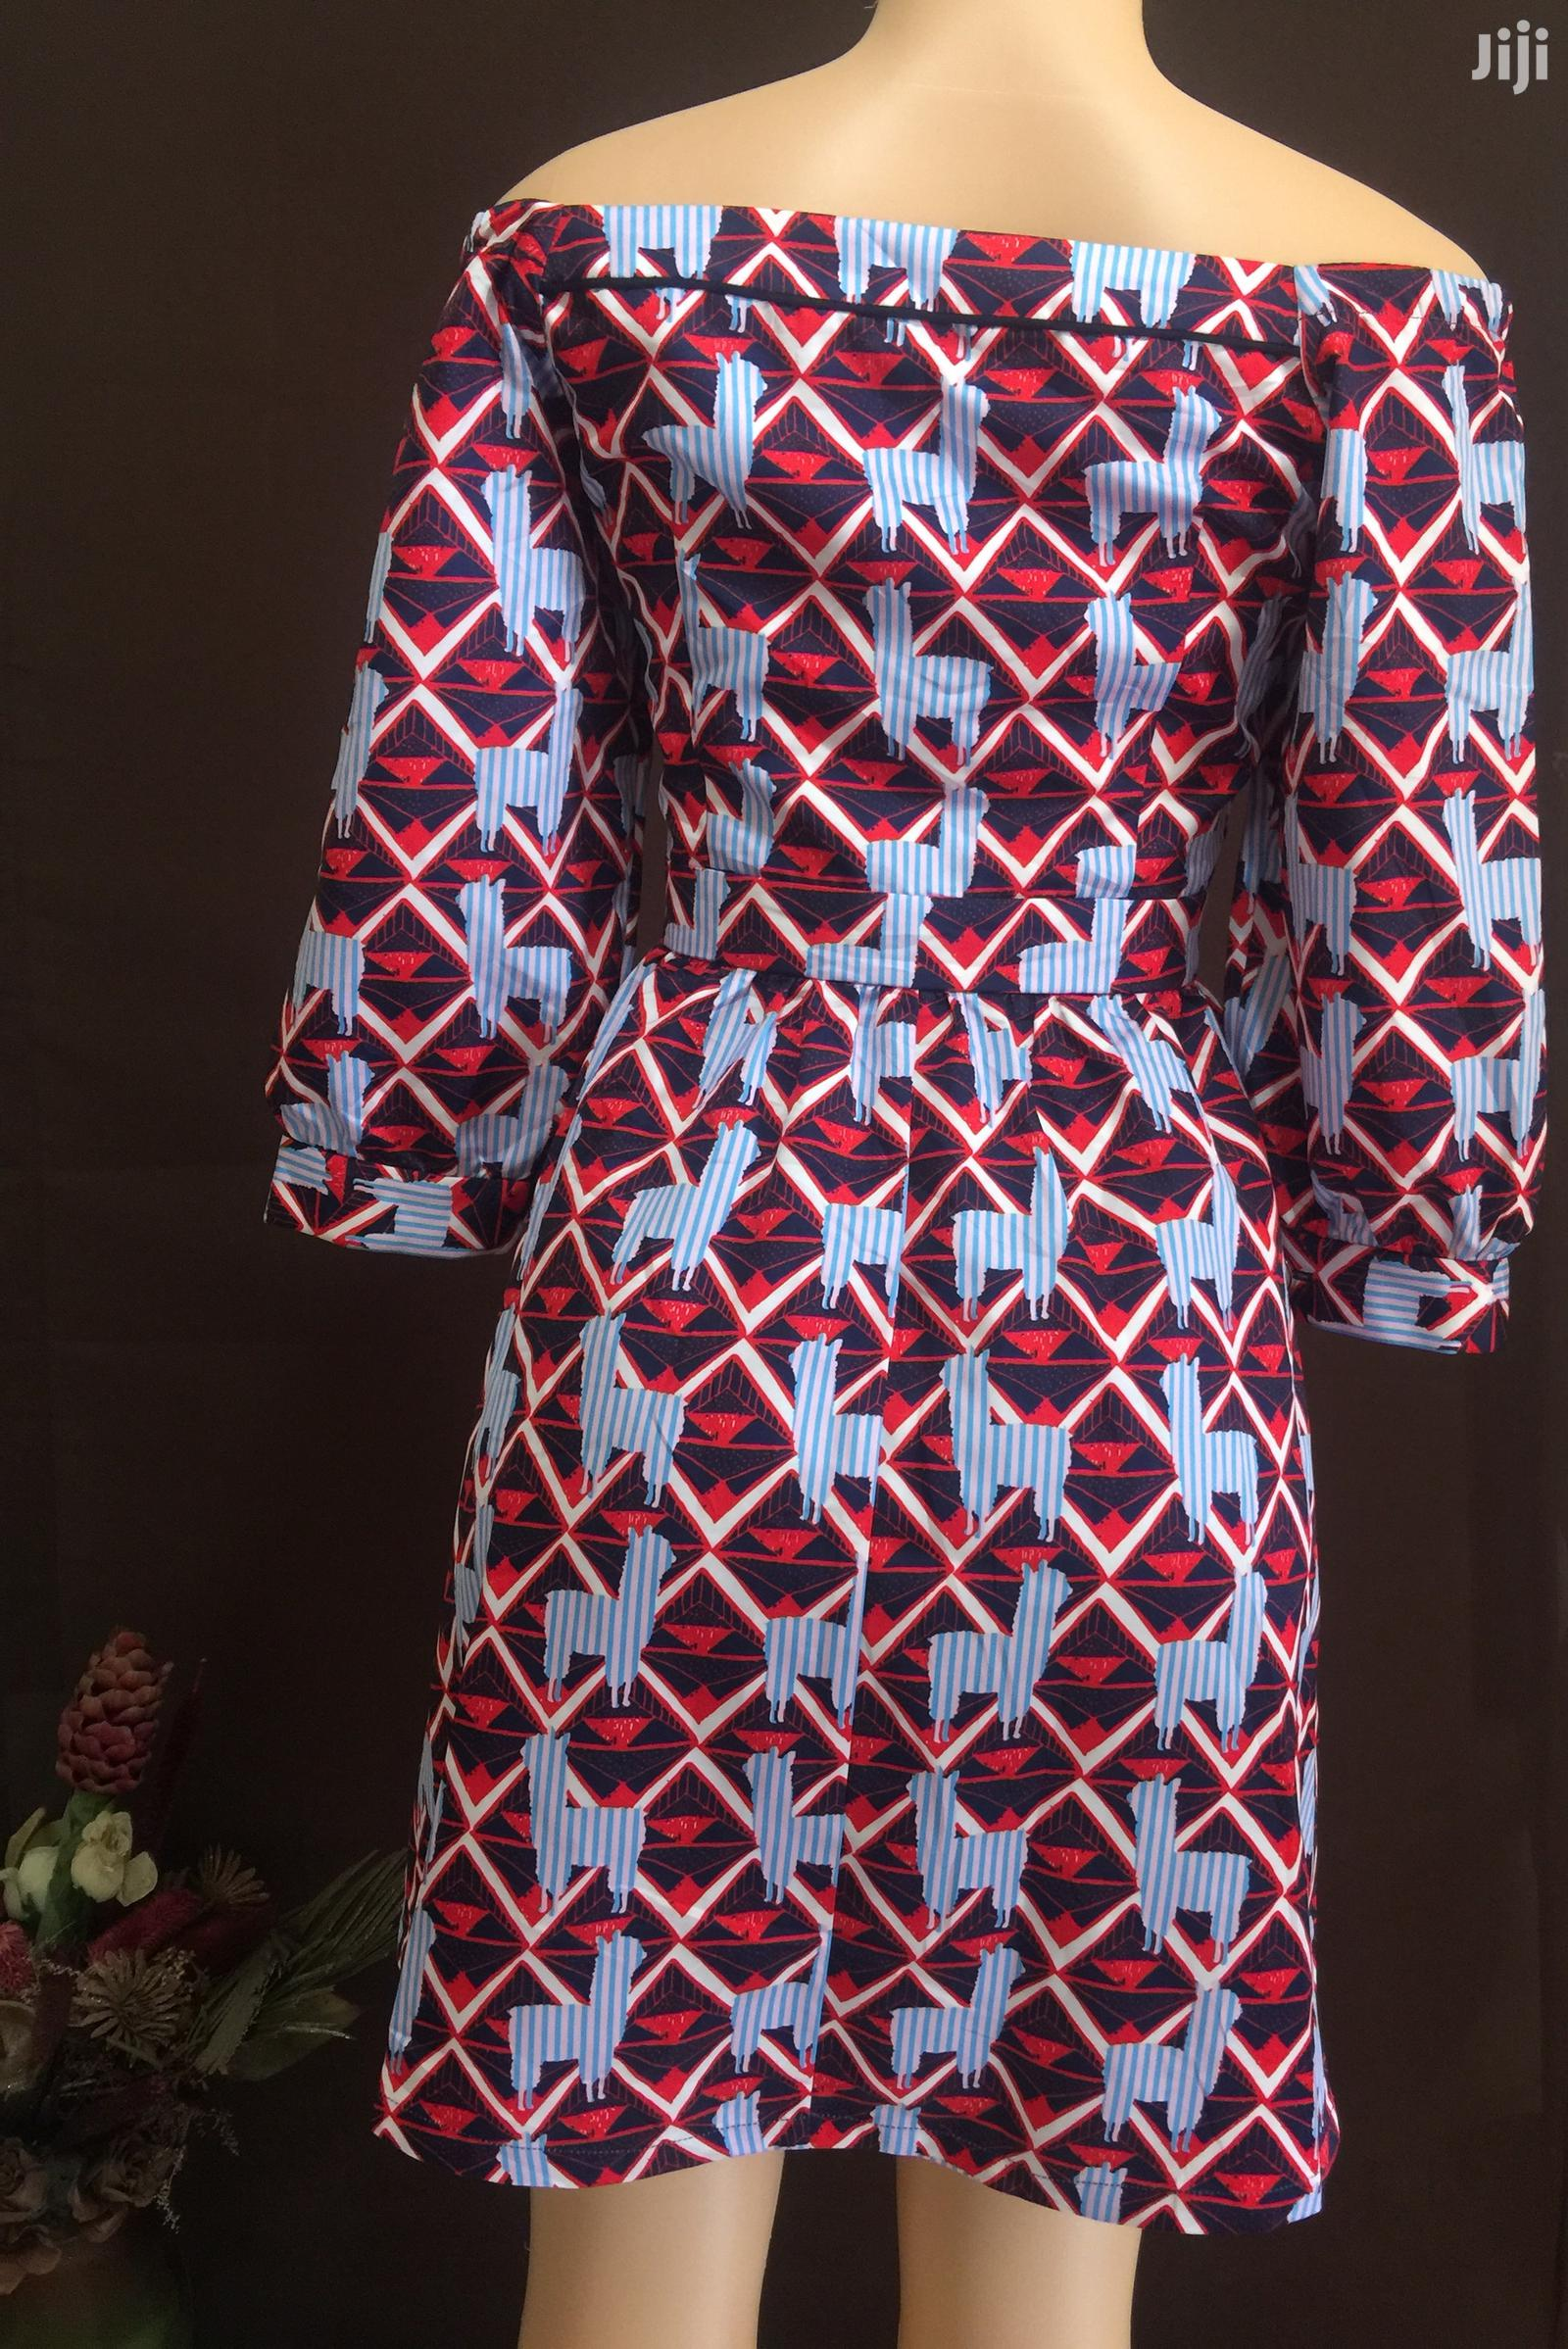 Flare Dress | Clothing for sale in Ga East Municipal, Greater Accra, Ghana